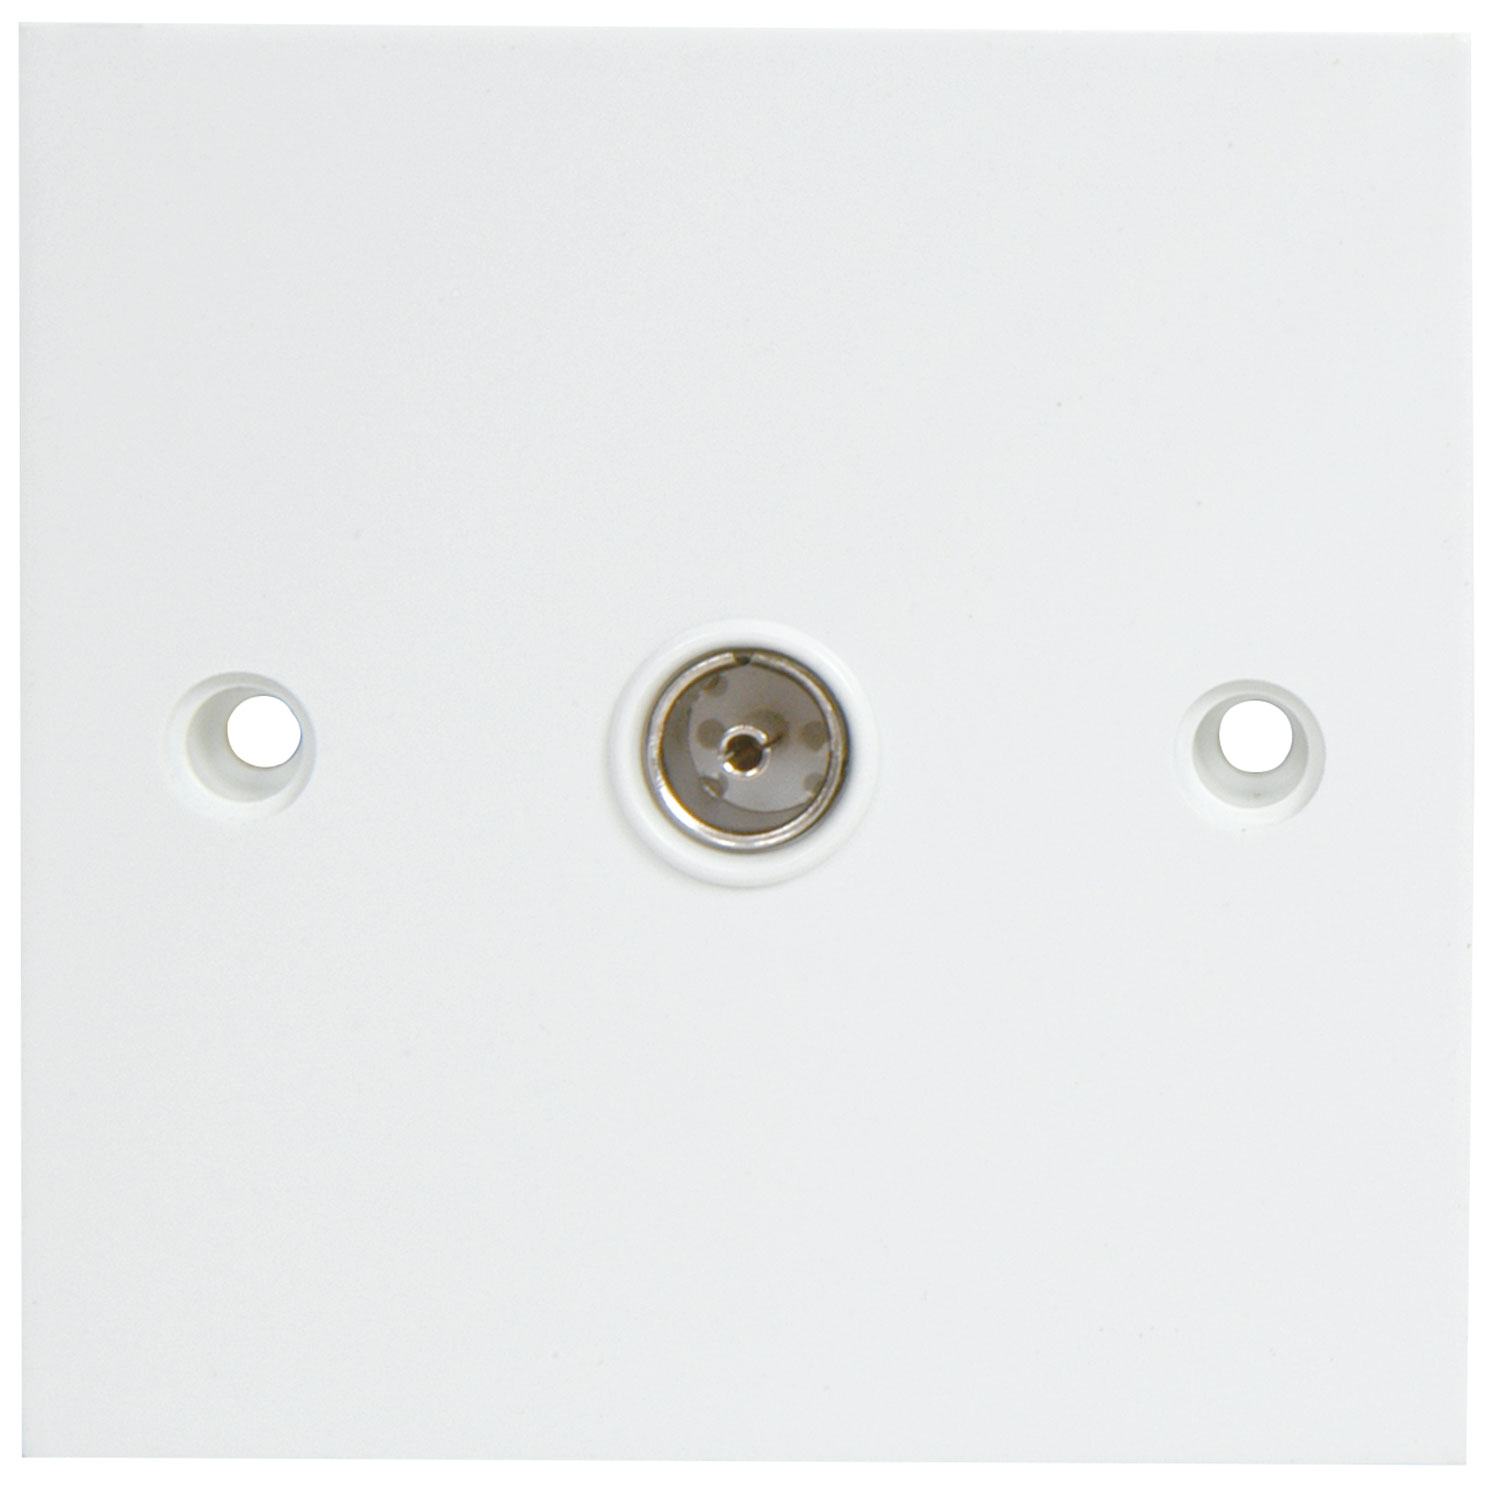 Wallplate TV Plastic Blister